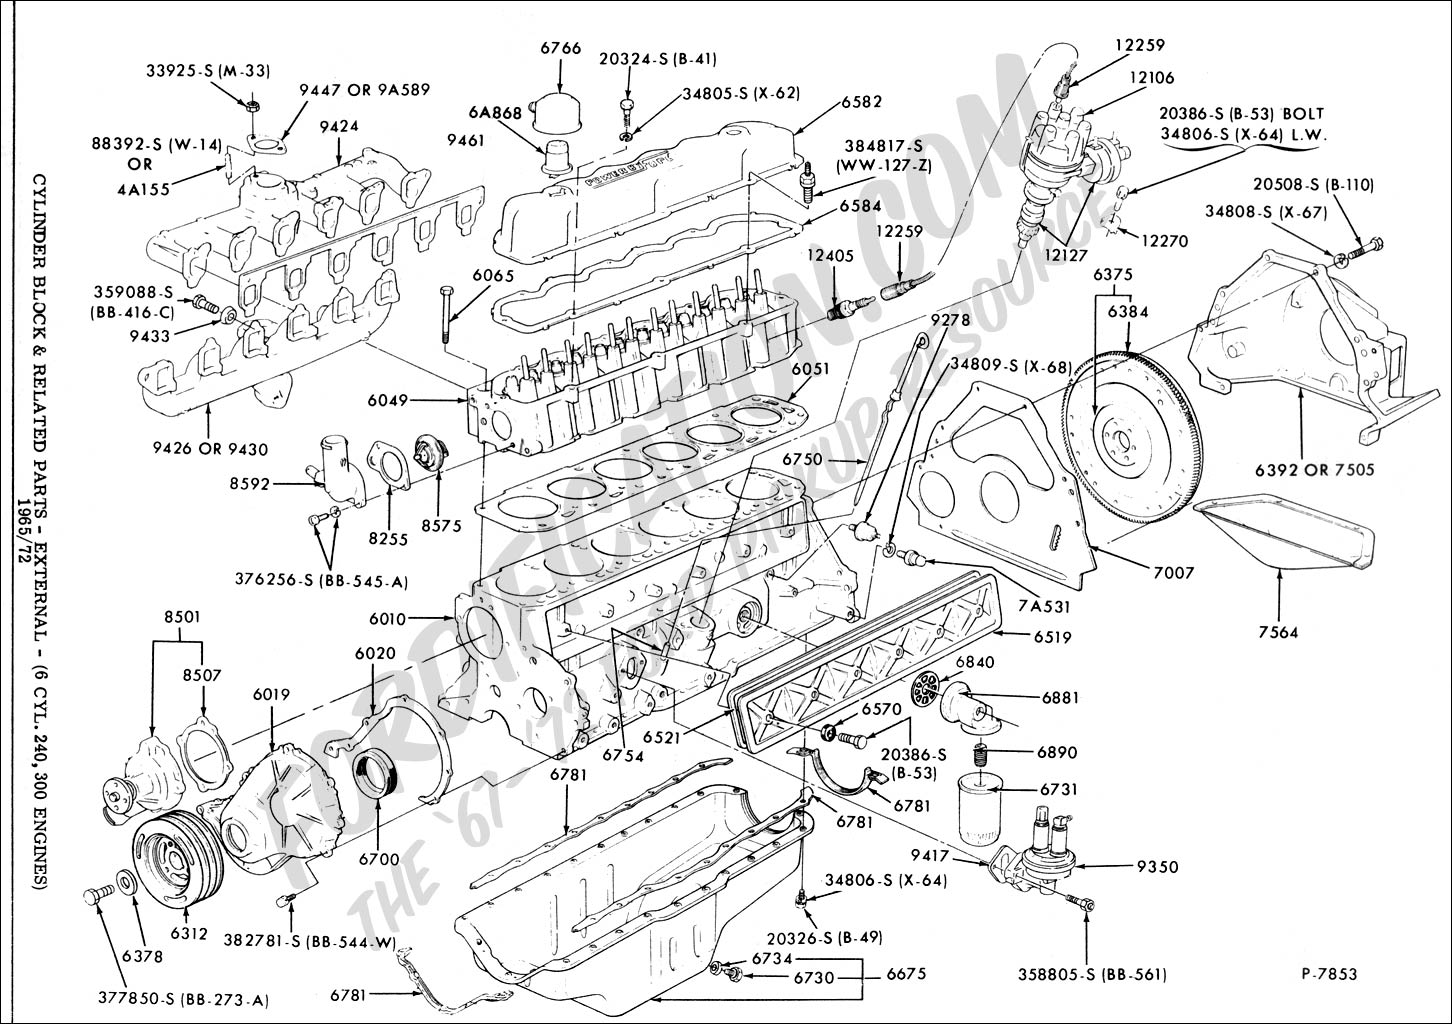 1995 ford ranger 2.3 engine diagram